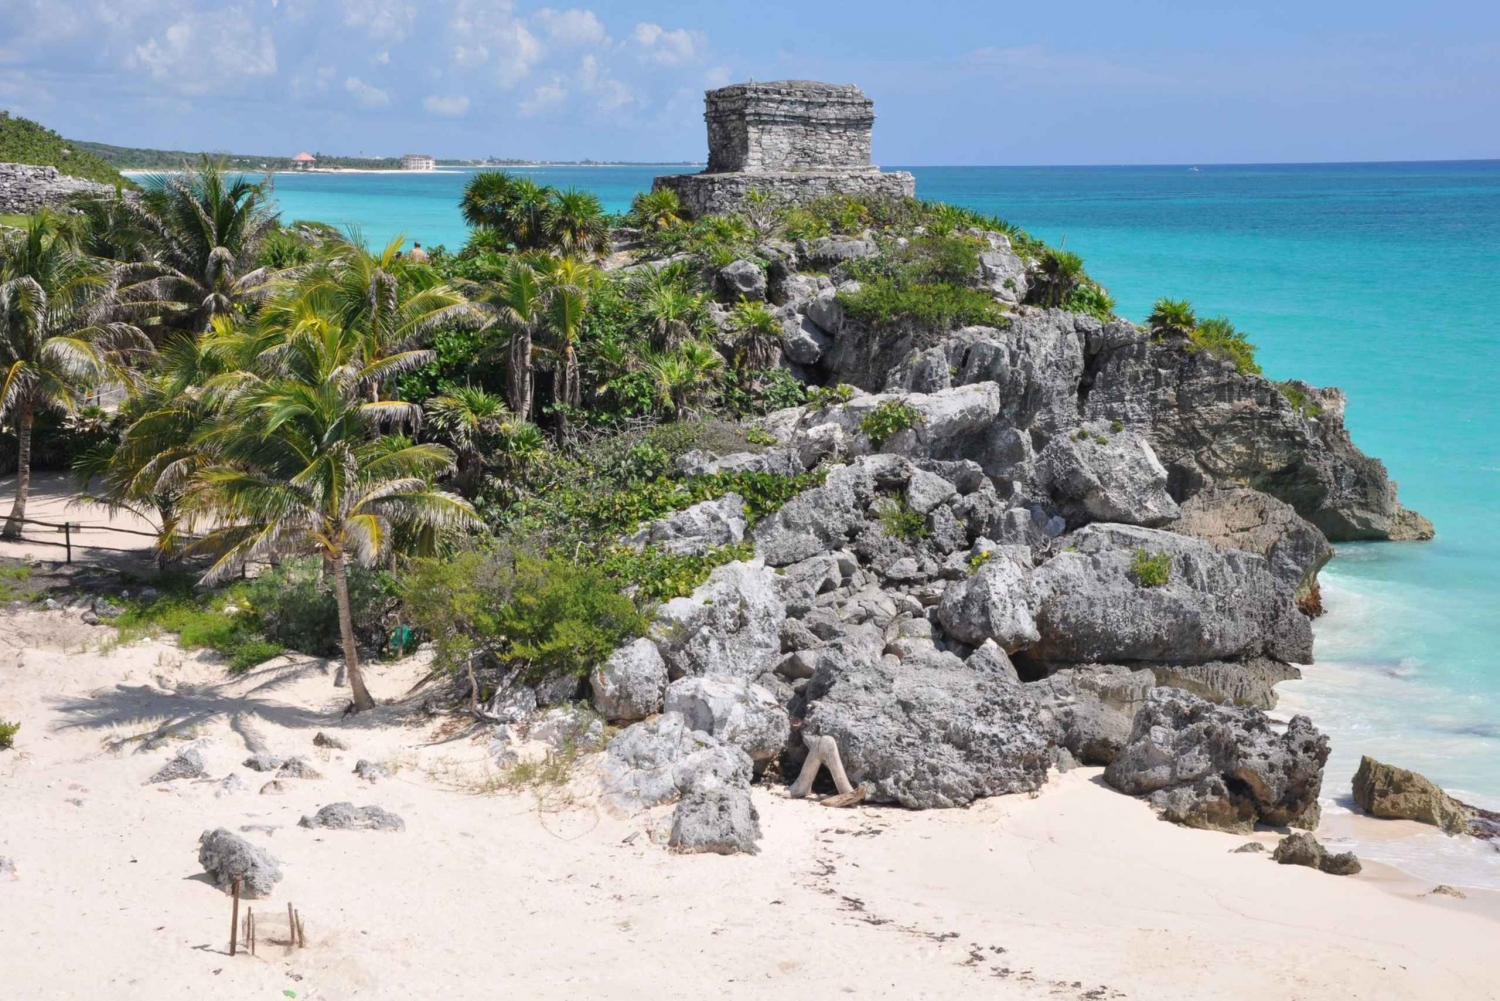 Full-Day: Skip-the-Line Guided Tour of Mayan Ruins of Tulum